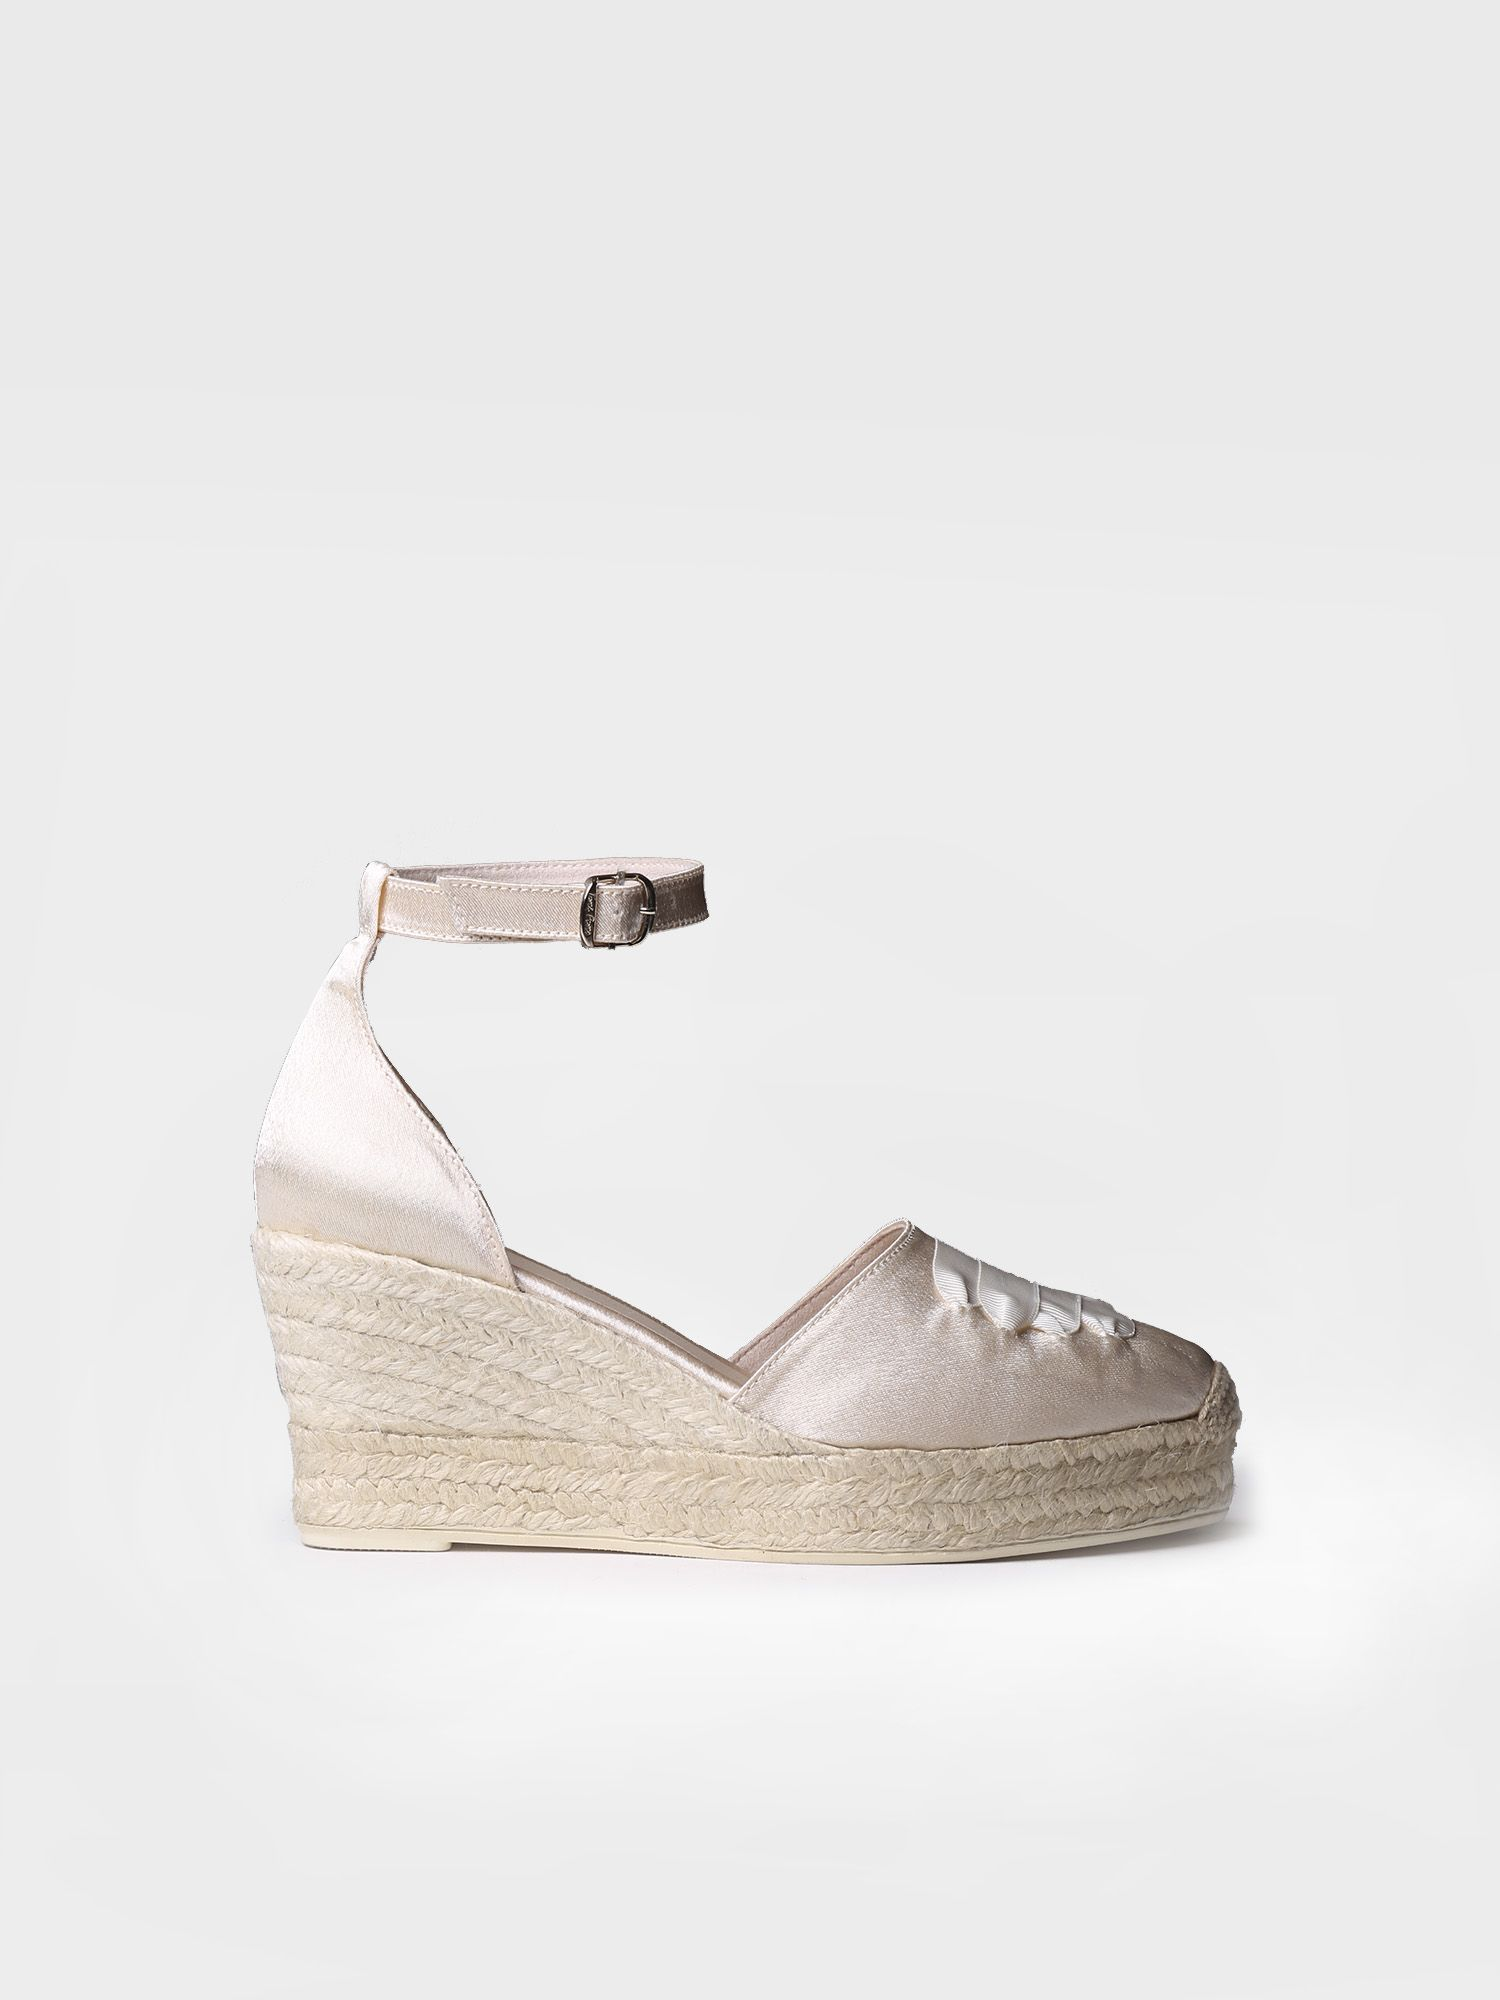 Wedding wedges - AYLA